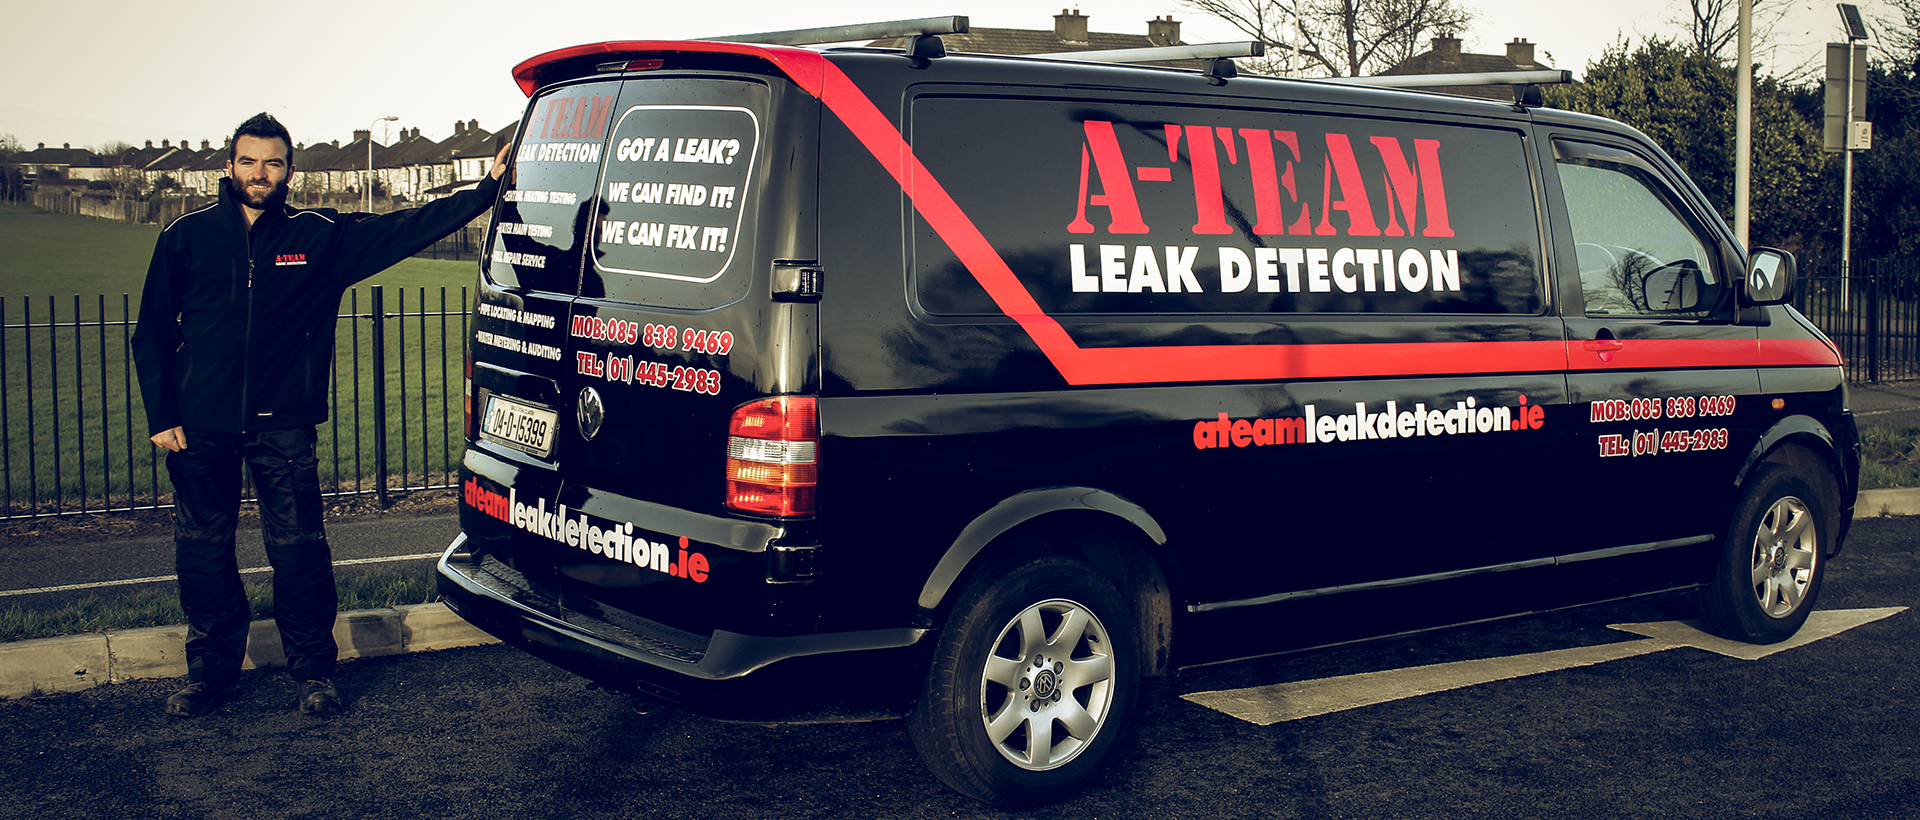 Leak Detection Dublin